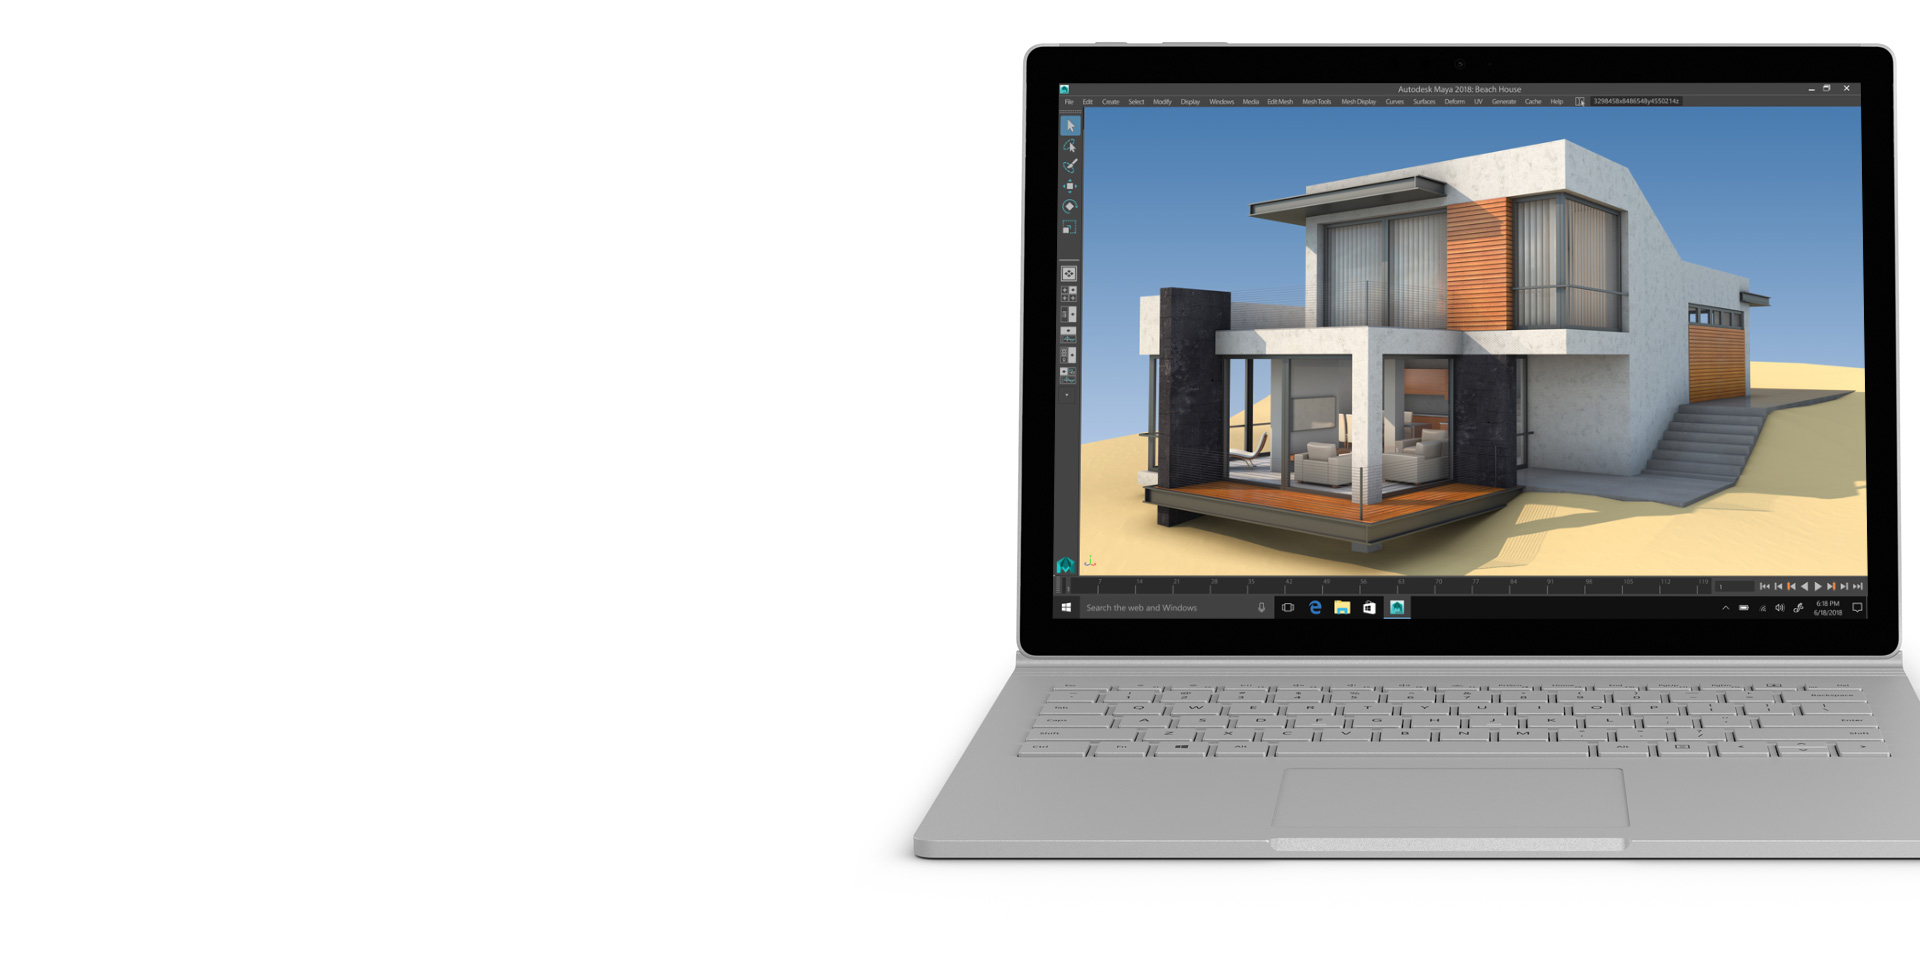 Autodesk Maya on a Surface Book 2 display